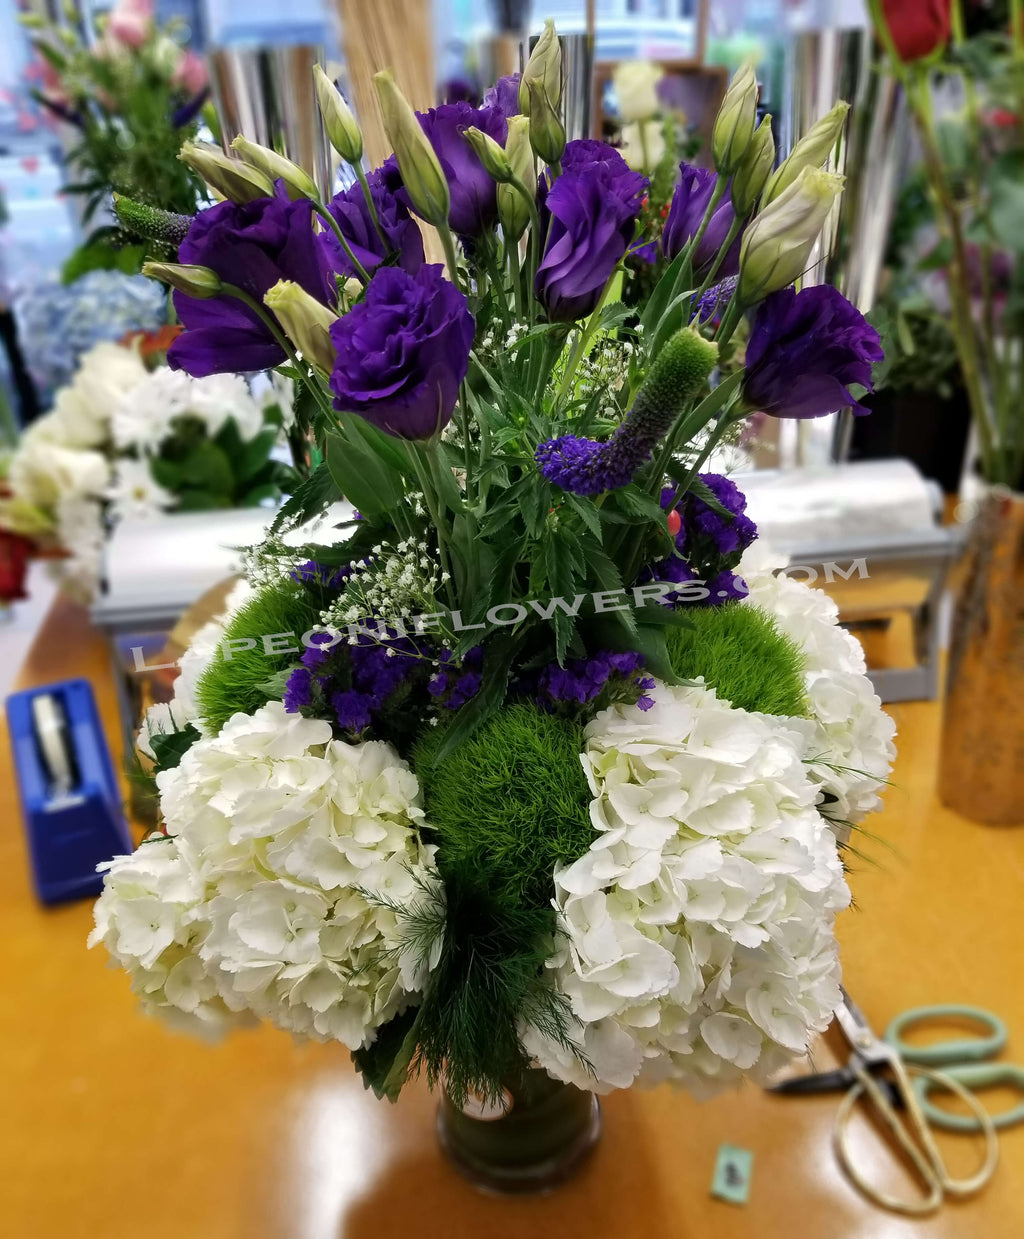 Purple flower delivery by Lapeoniflowers.com